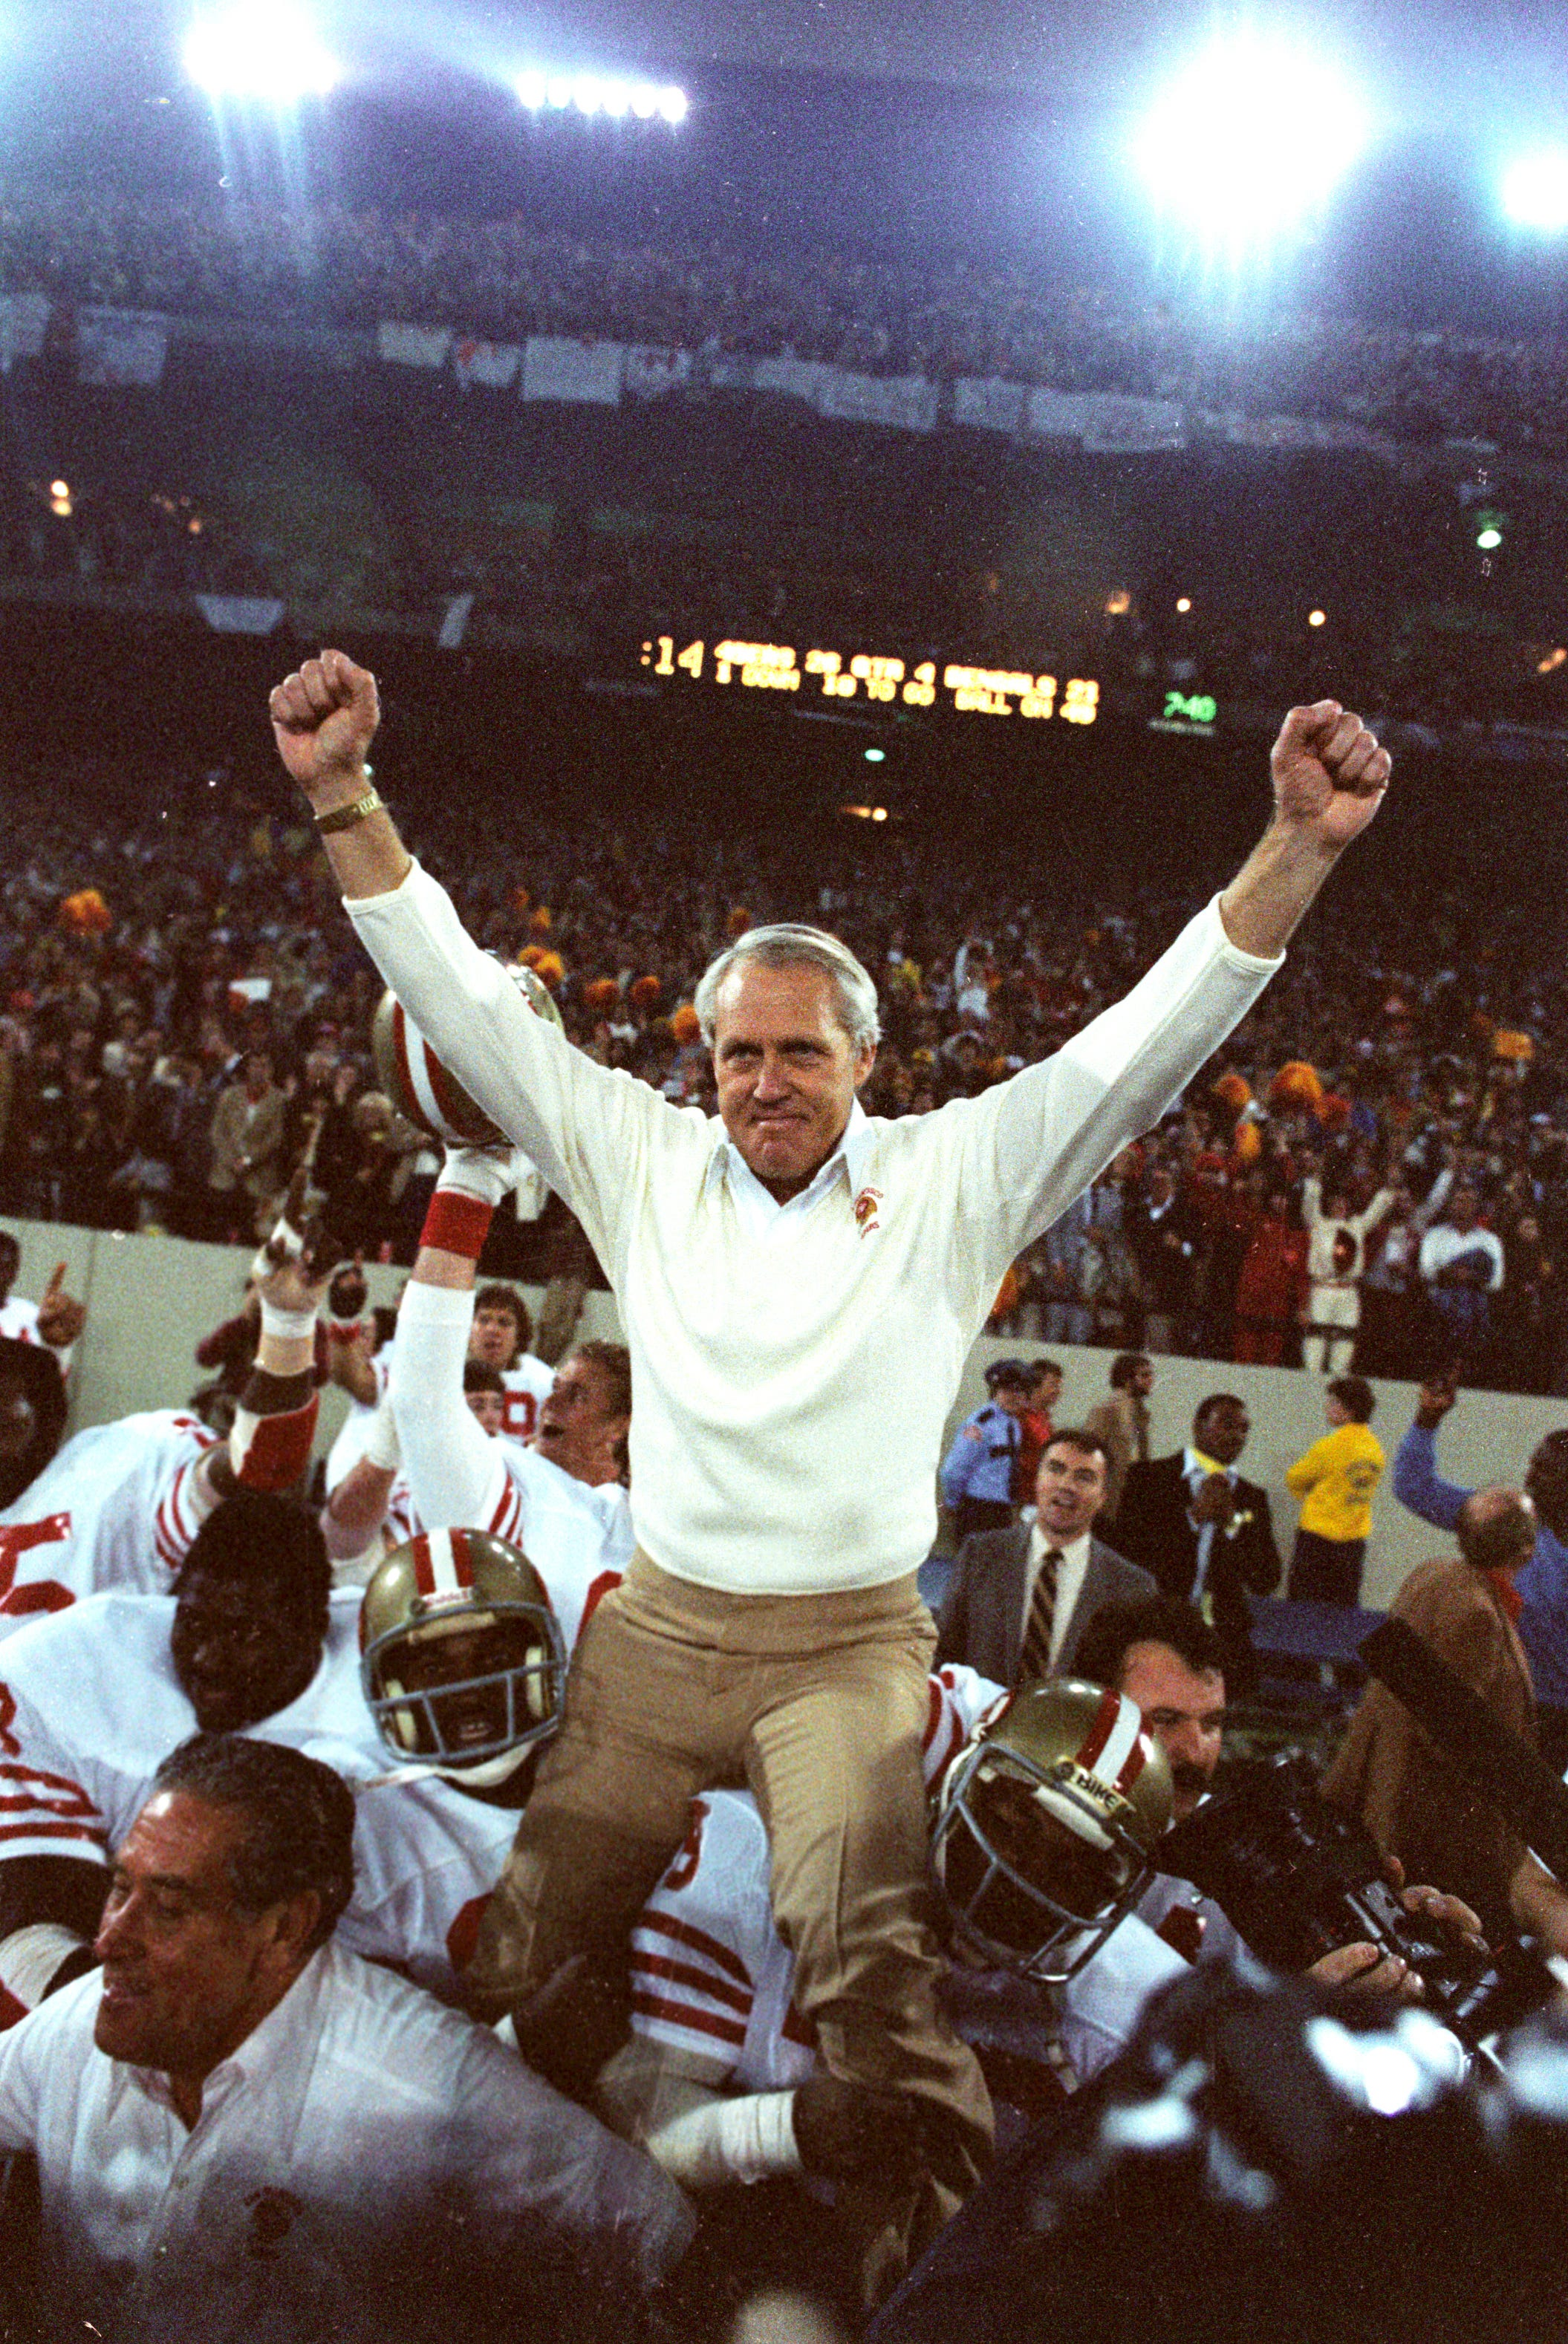 San Francisco 49ers coach Bill Walsh is carried off